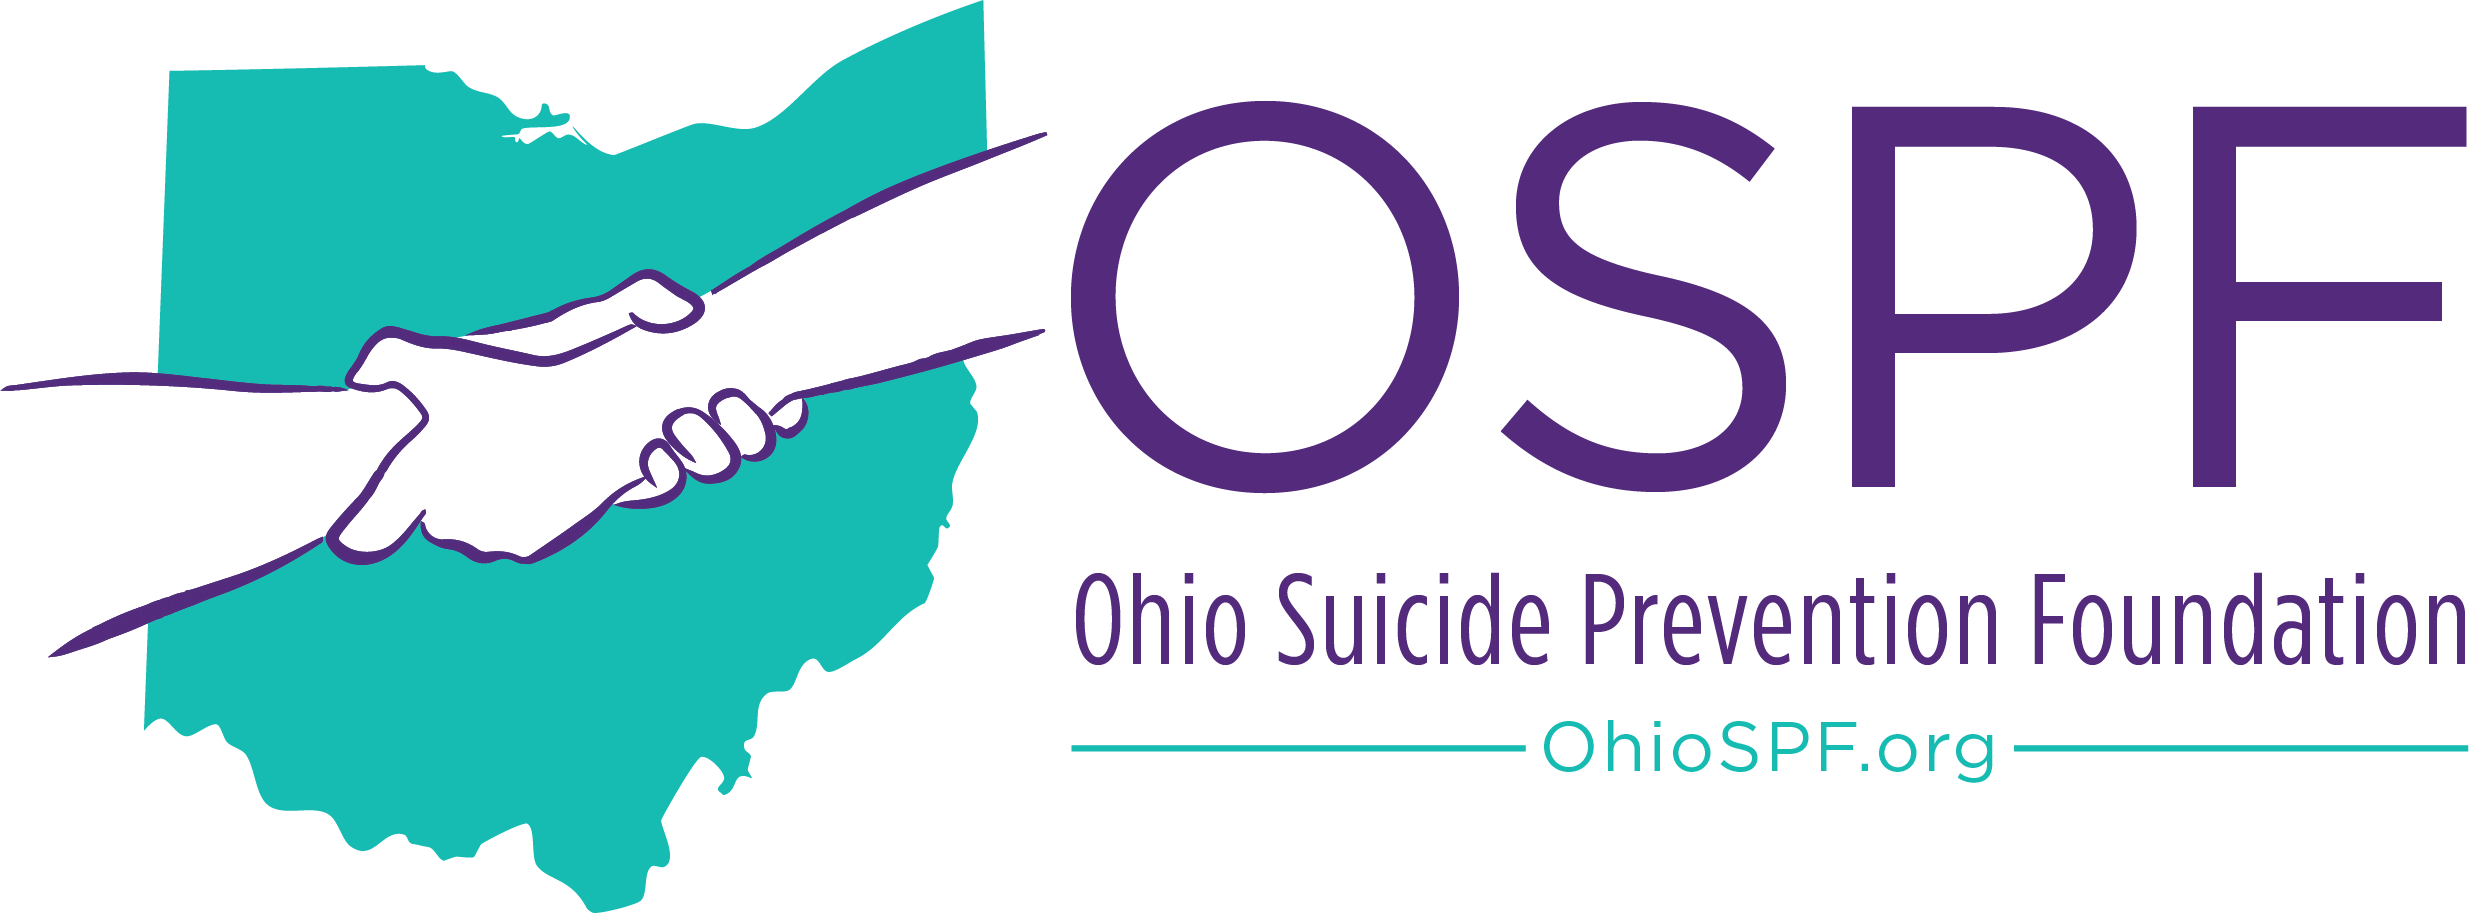 Collaborative Assessment & Management of Suicidality (in Mansfield)